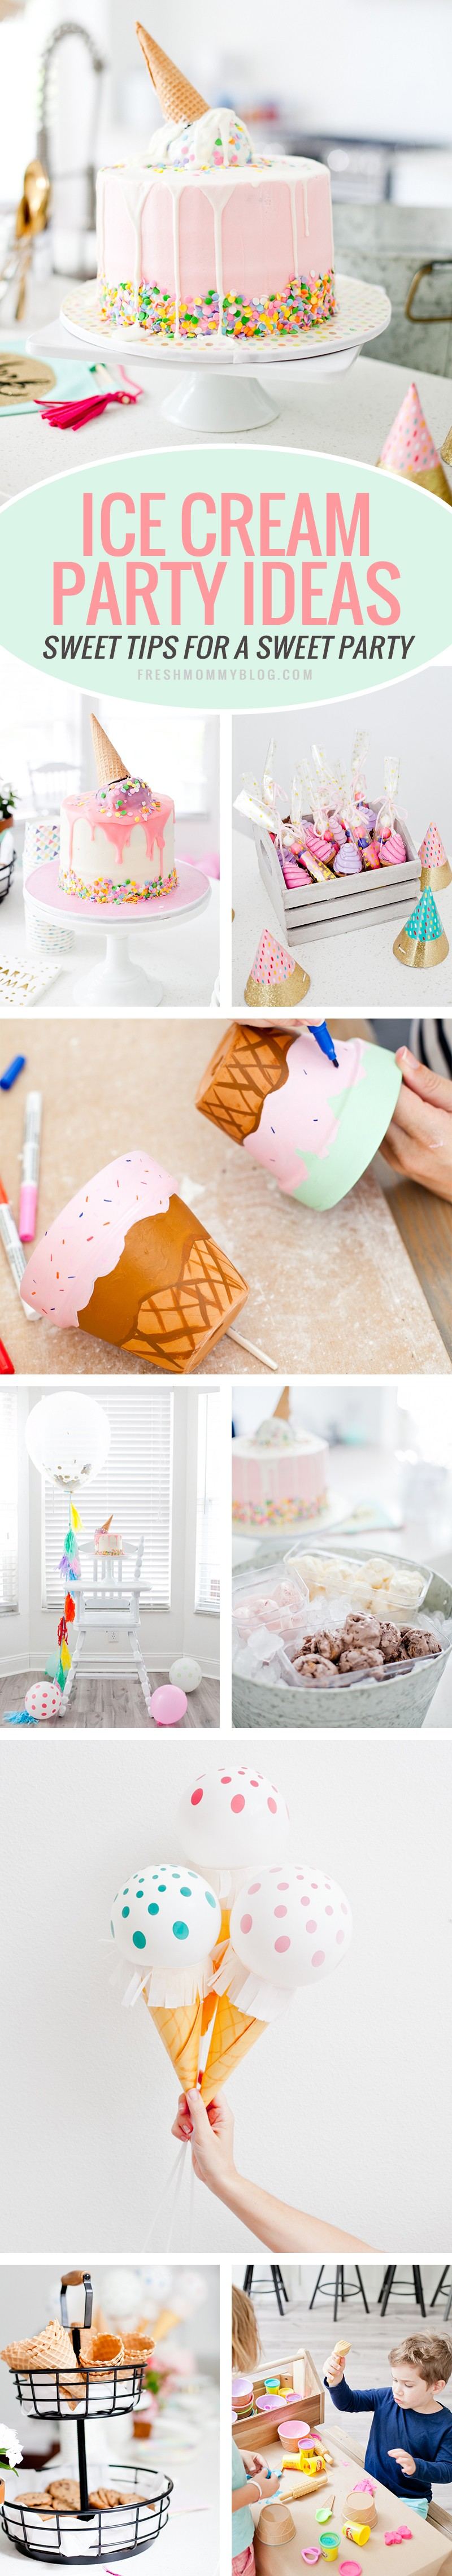 Ice Cream Party Ideas For An Ice Cream Social Birthday